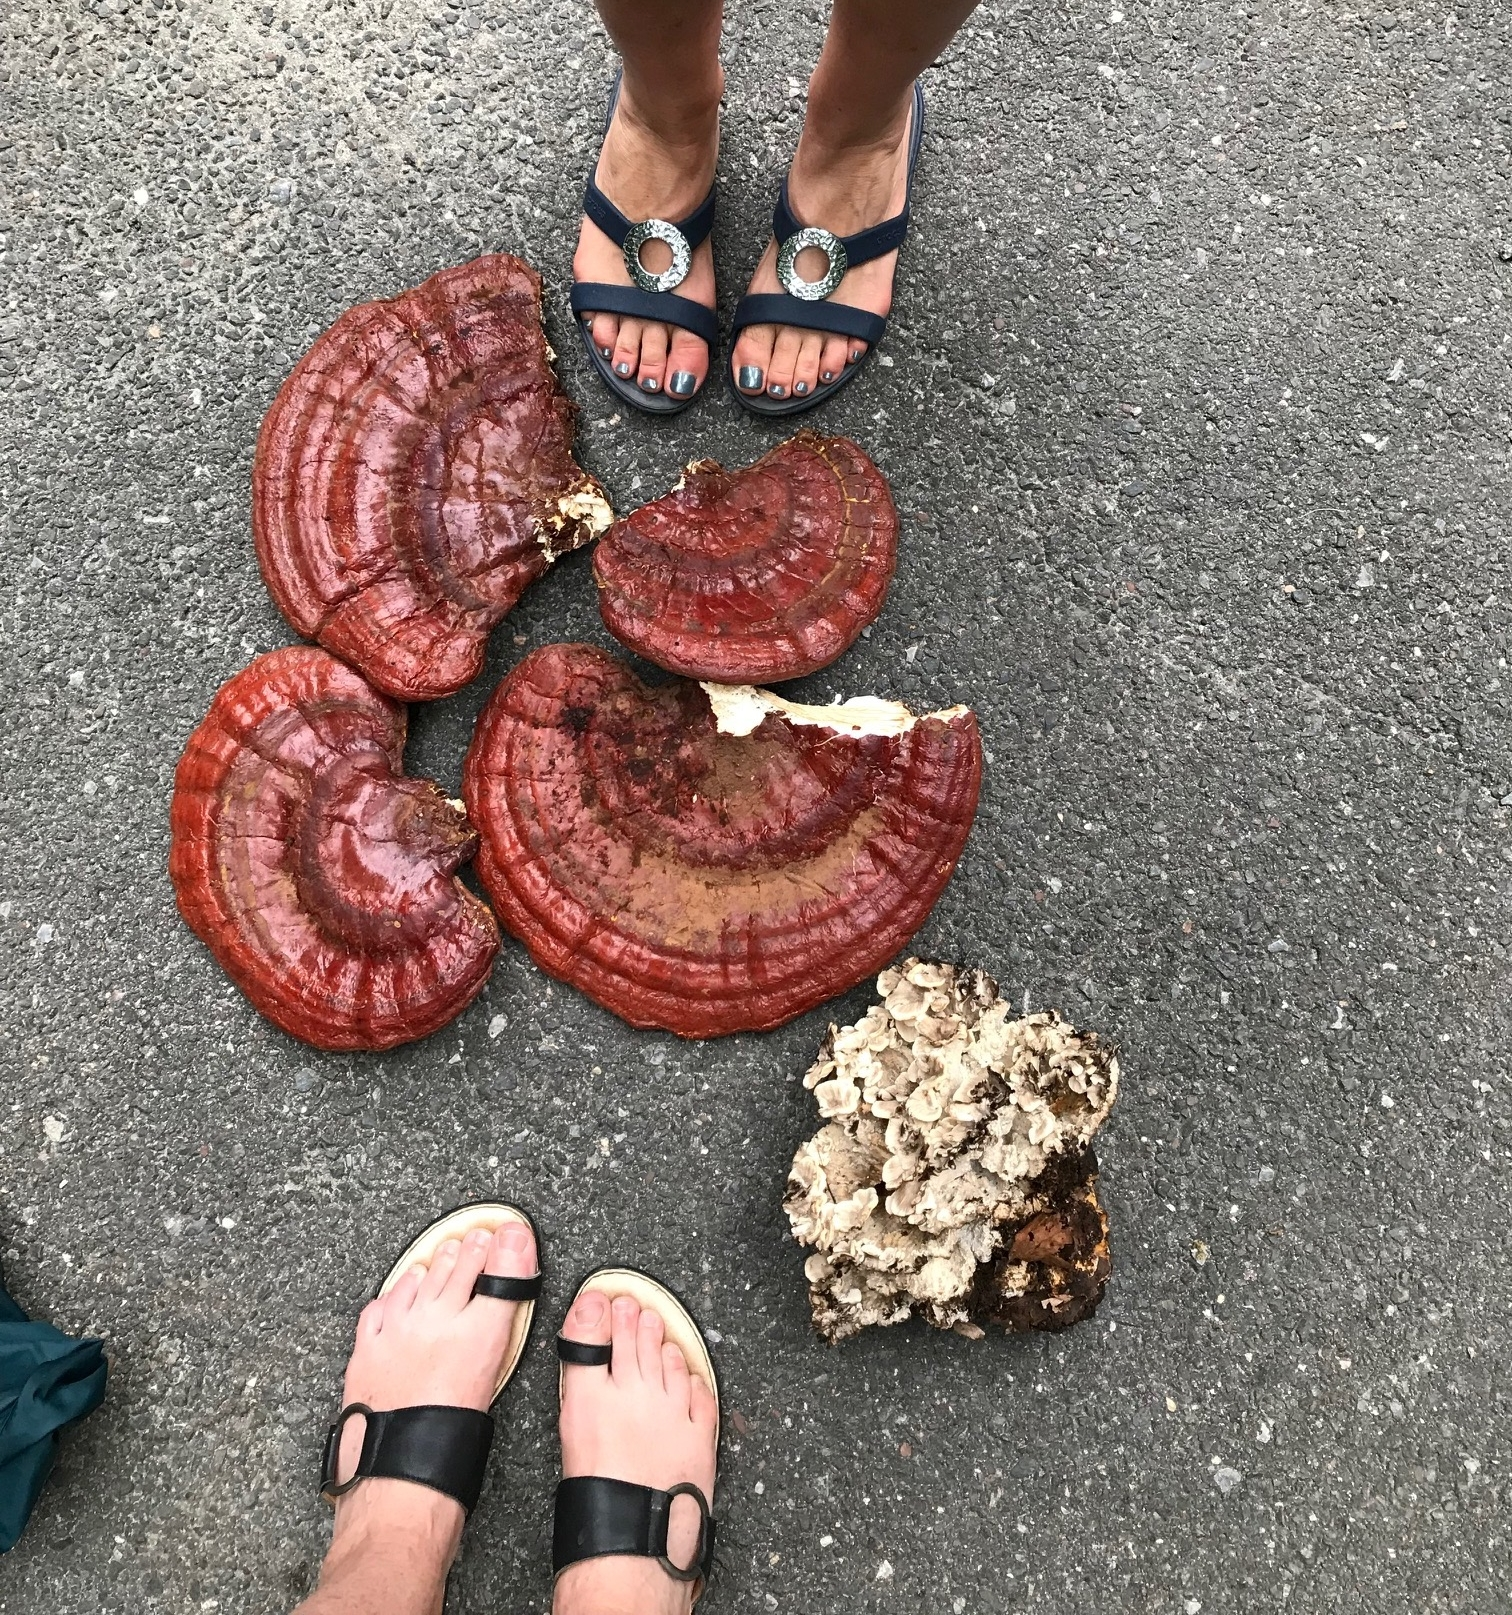 The reishi I found this past spring growing in CT. The white mushrooms are black staining polypores. I thought they were miatake but it was too early.